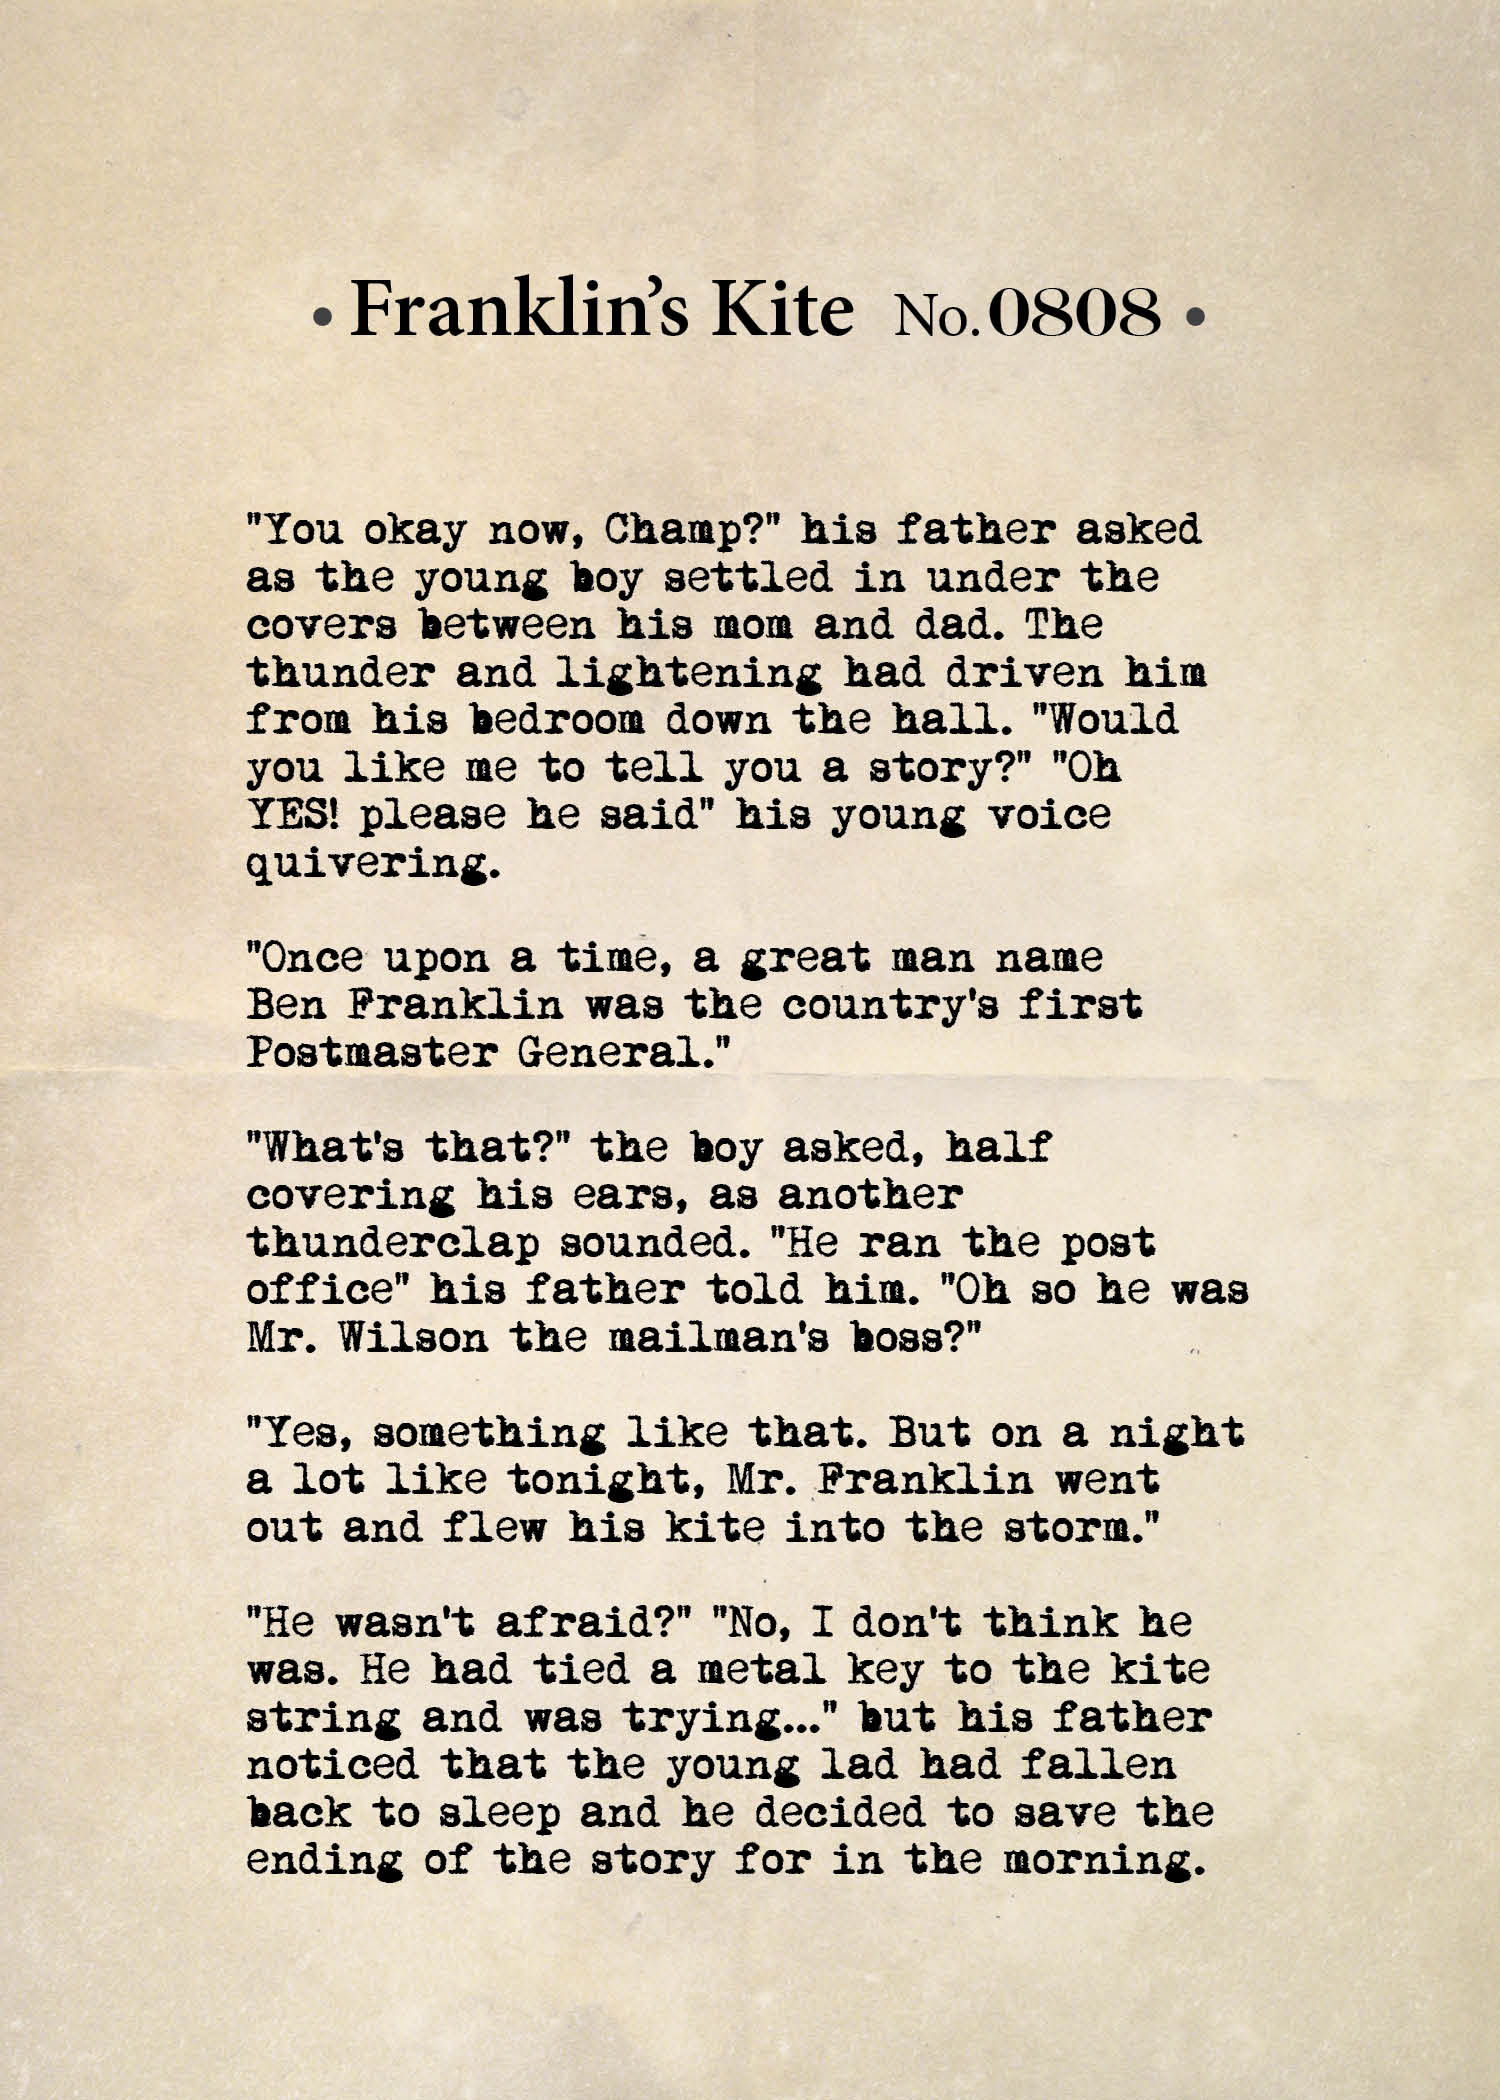 Franklin's Kite No. 0808